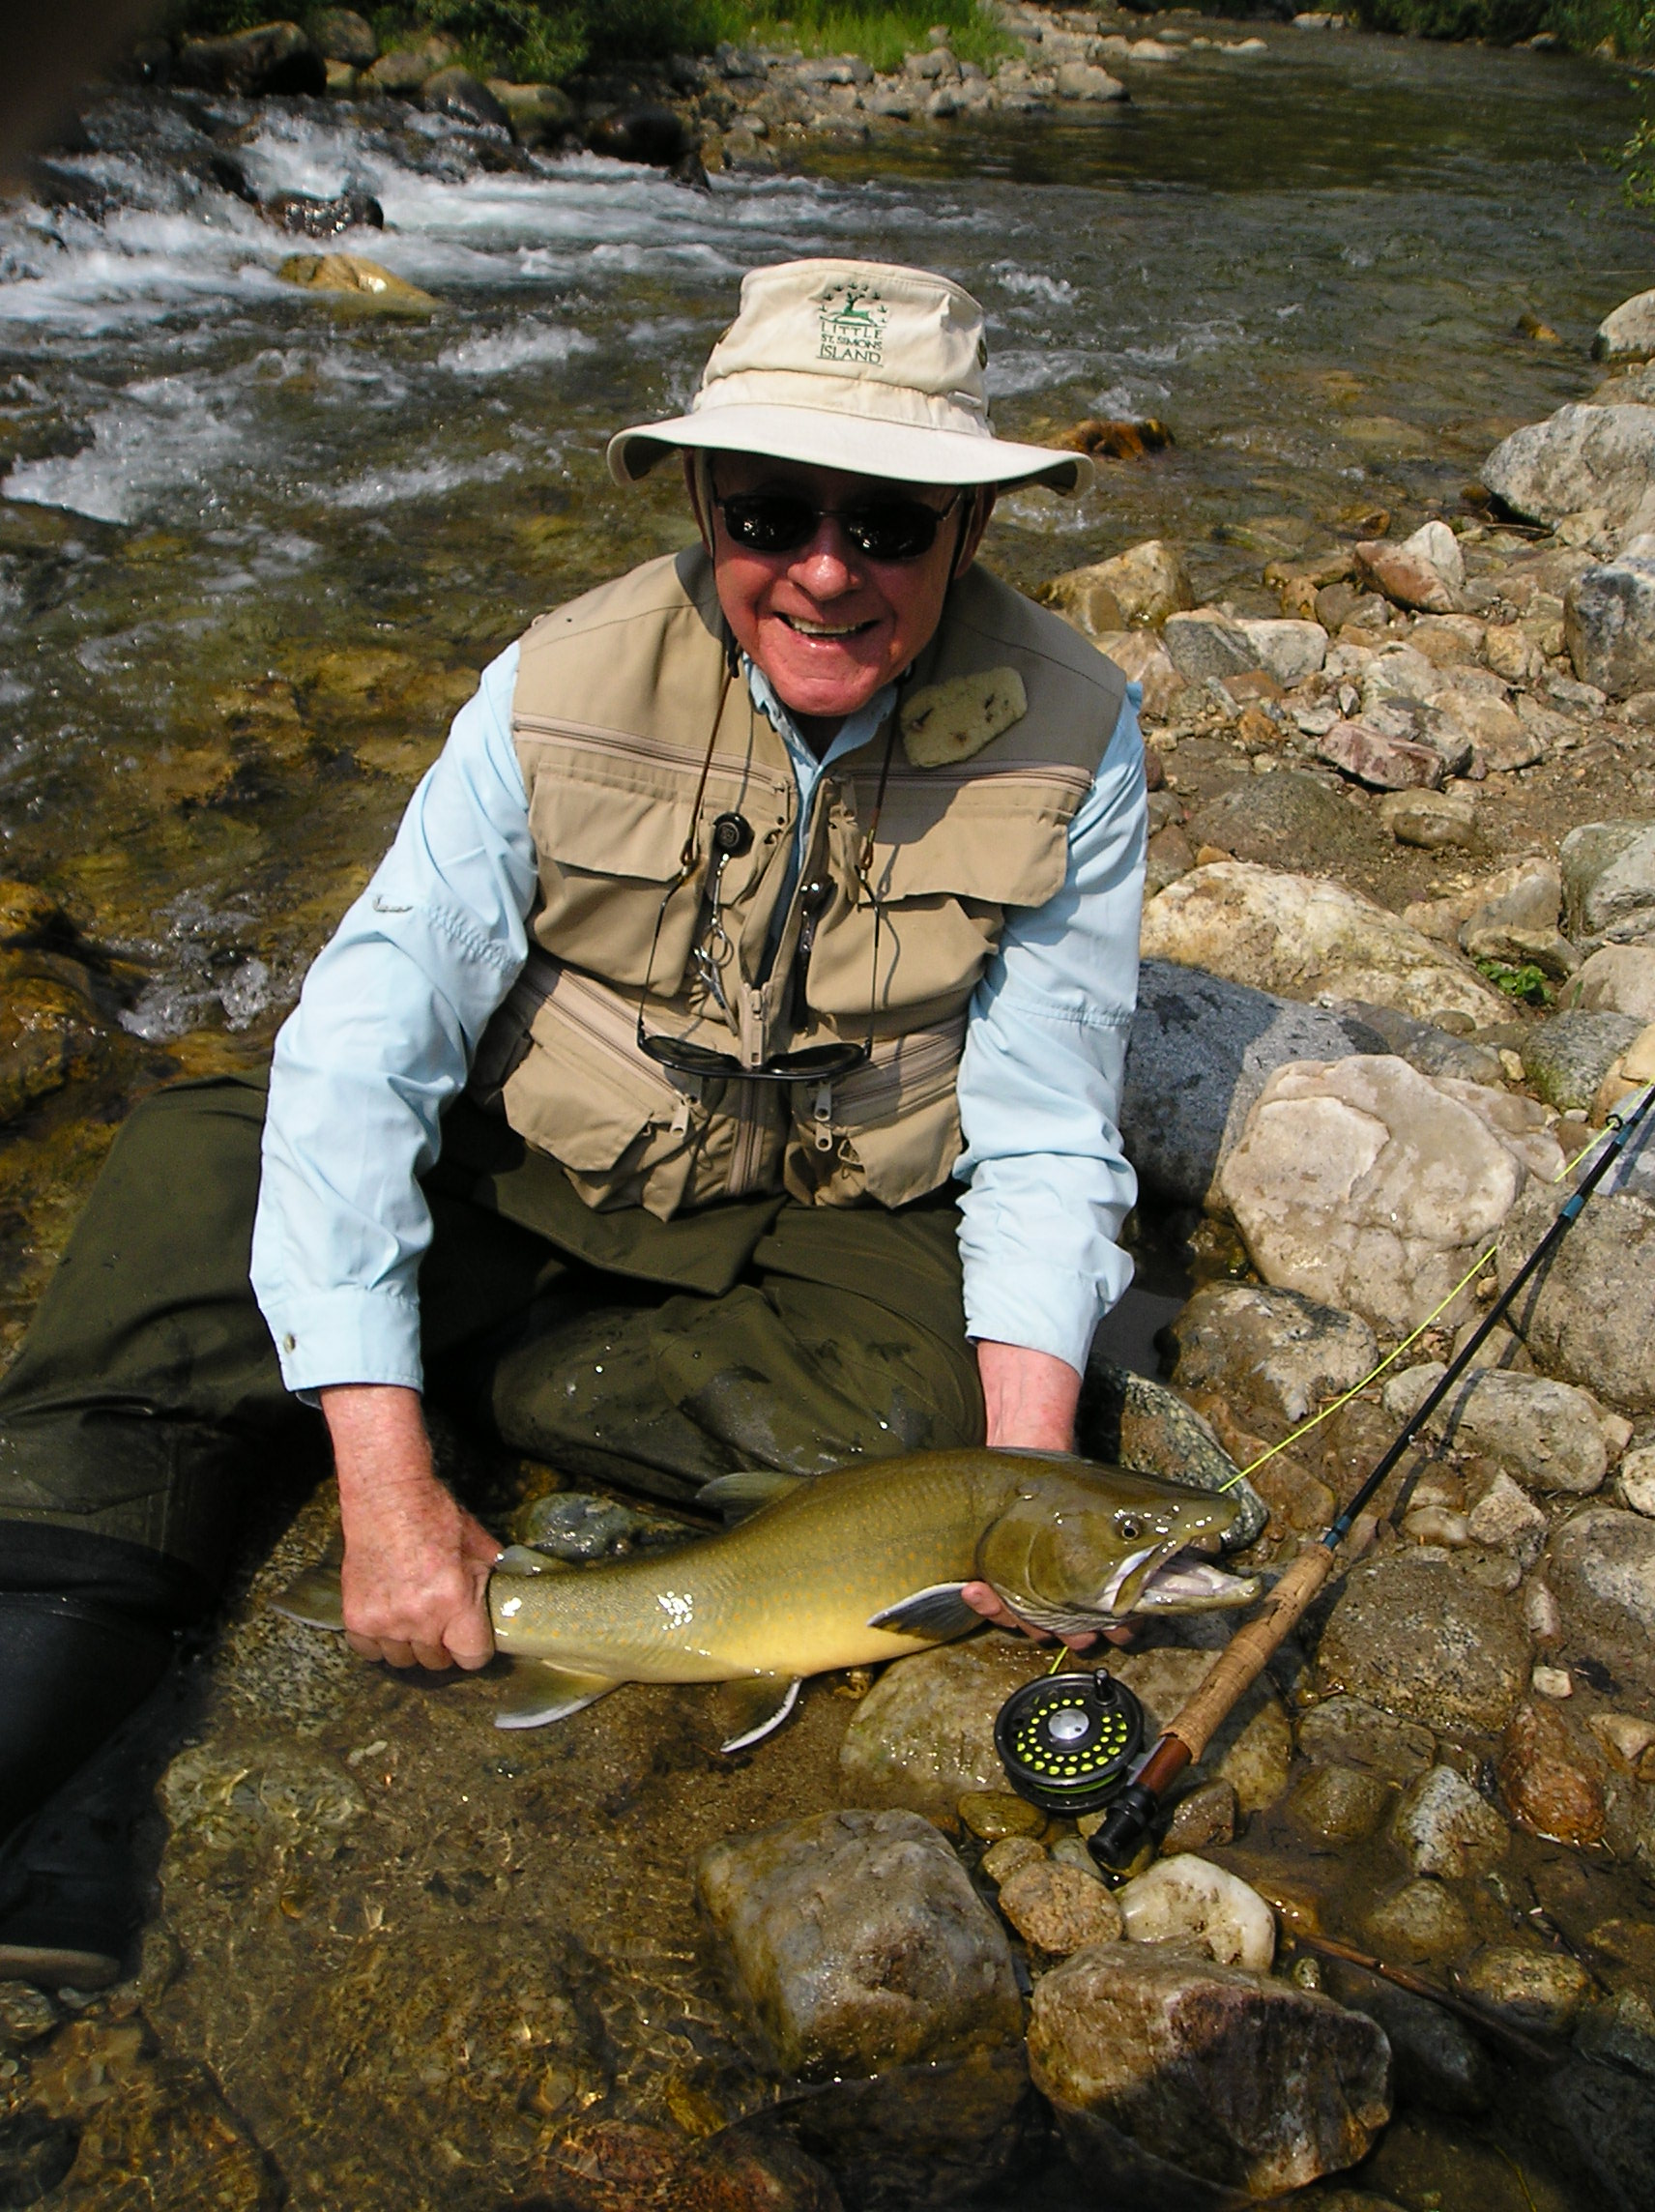 Trout    Idaho has some of the most isolated, trout friendly waters in North America. Our guides are experience in the best trout streams in Idaho, and can lead you through single or multi-day trips through the wilderness.